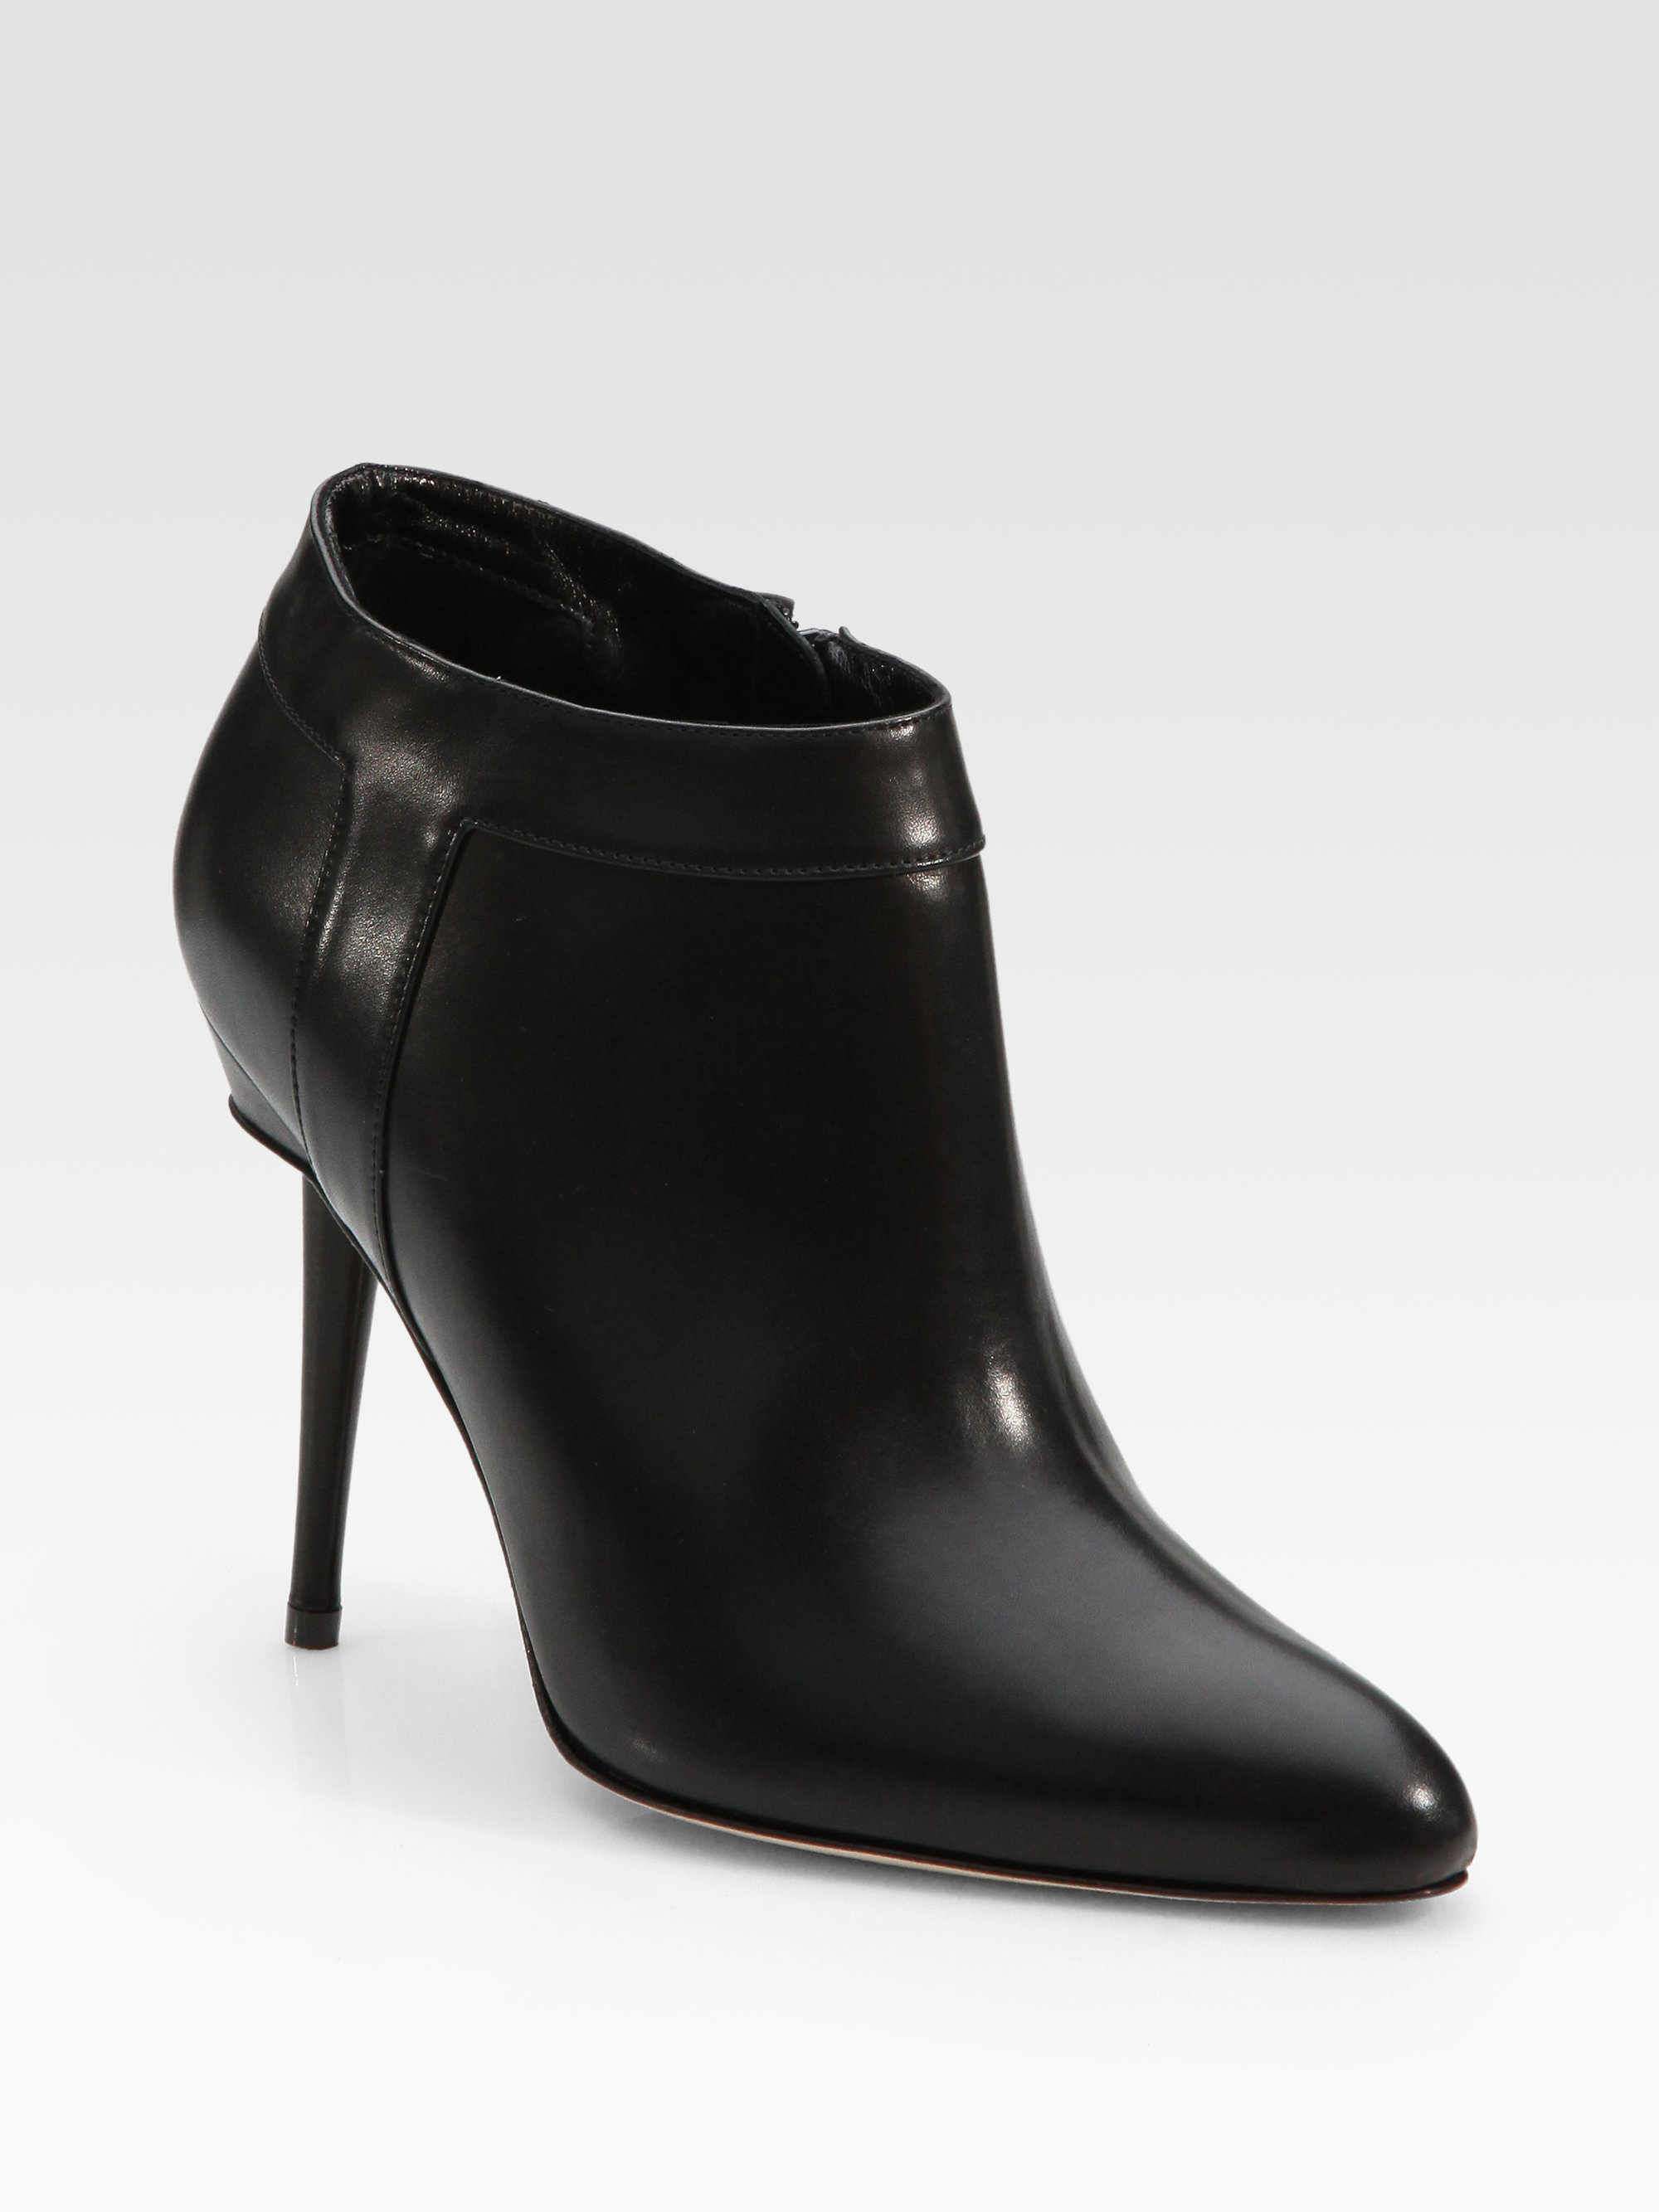 Manolo Blahnik Leather Sidezip Ankle Boots in Black | Lyst